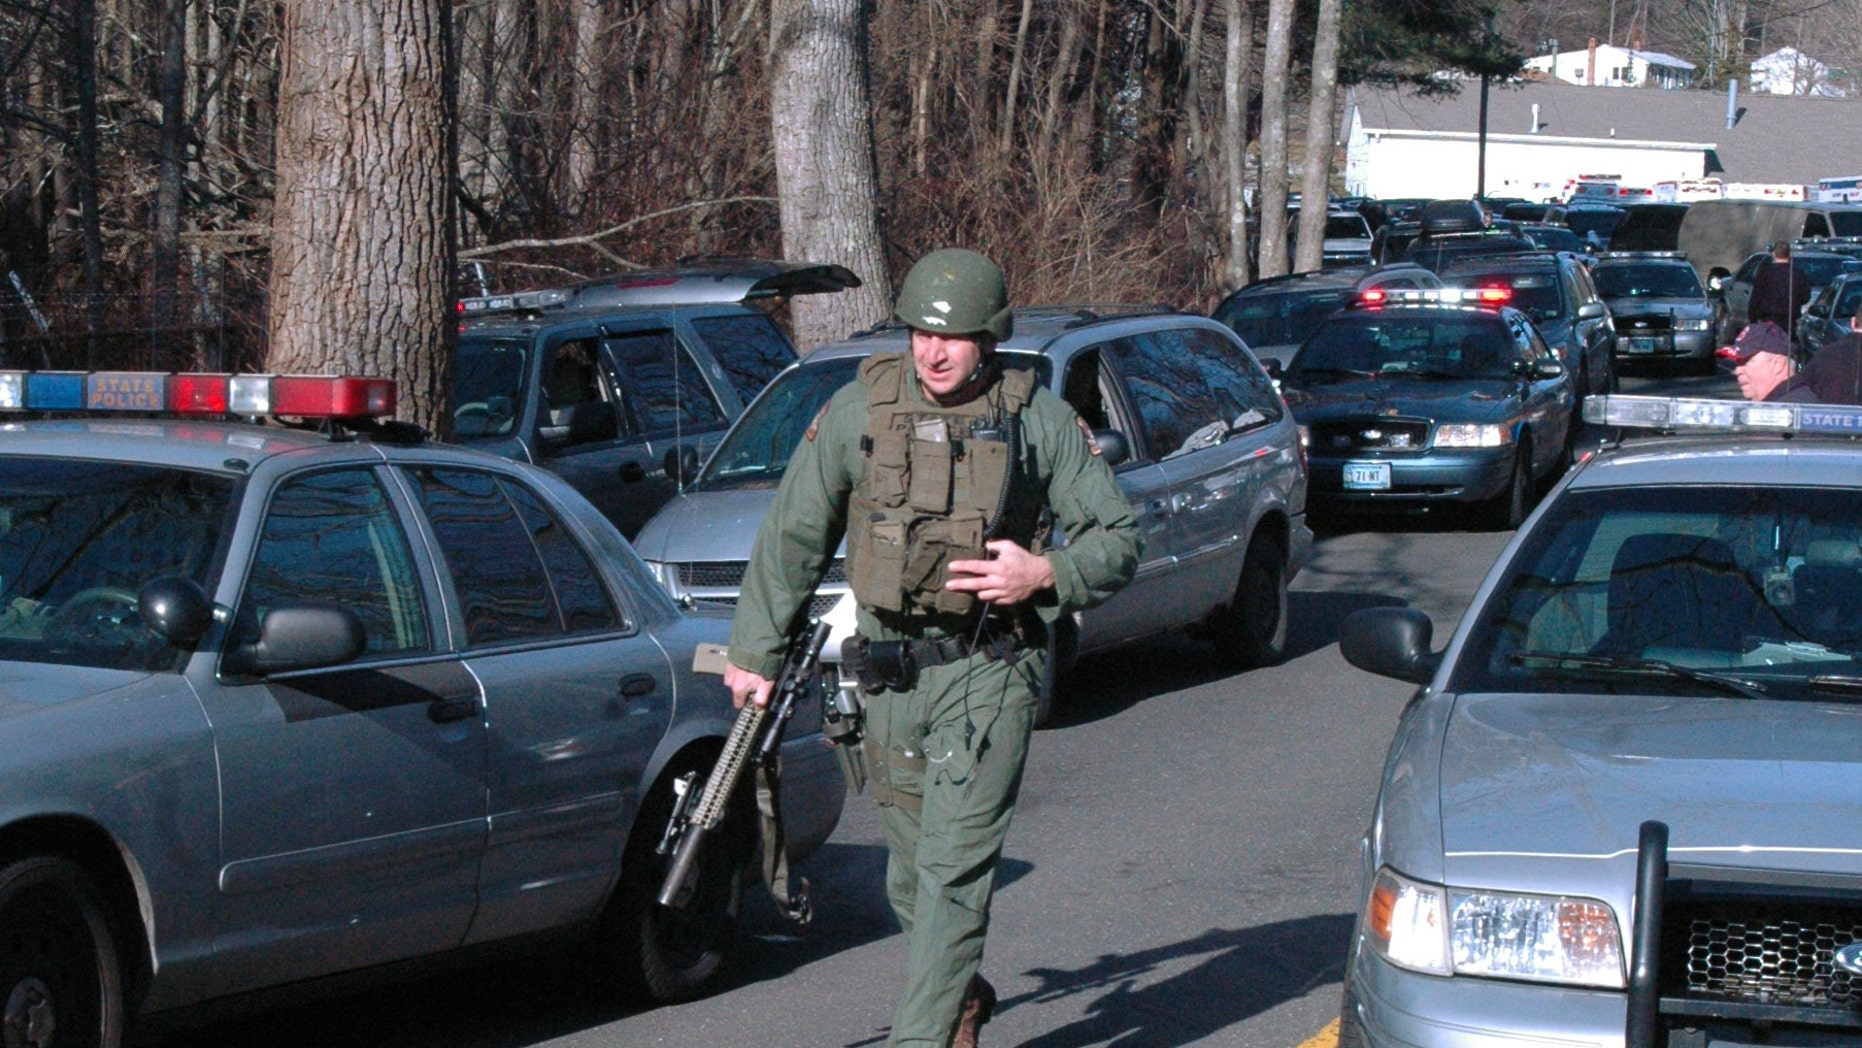 Dec. 14, 2012: In this photo provided by the Newtown Bee, police officers are on the scene outside Sandy Hook Elementary School in Newtown, Conn., where authorities say a gunman opened fire, killing 26 people, including 20 children.